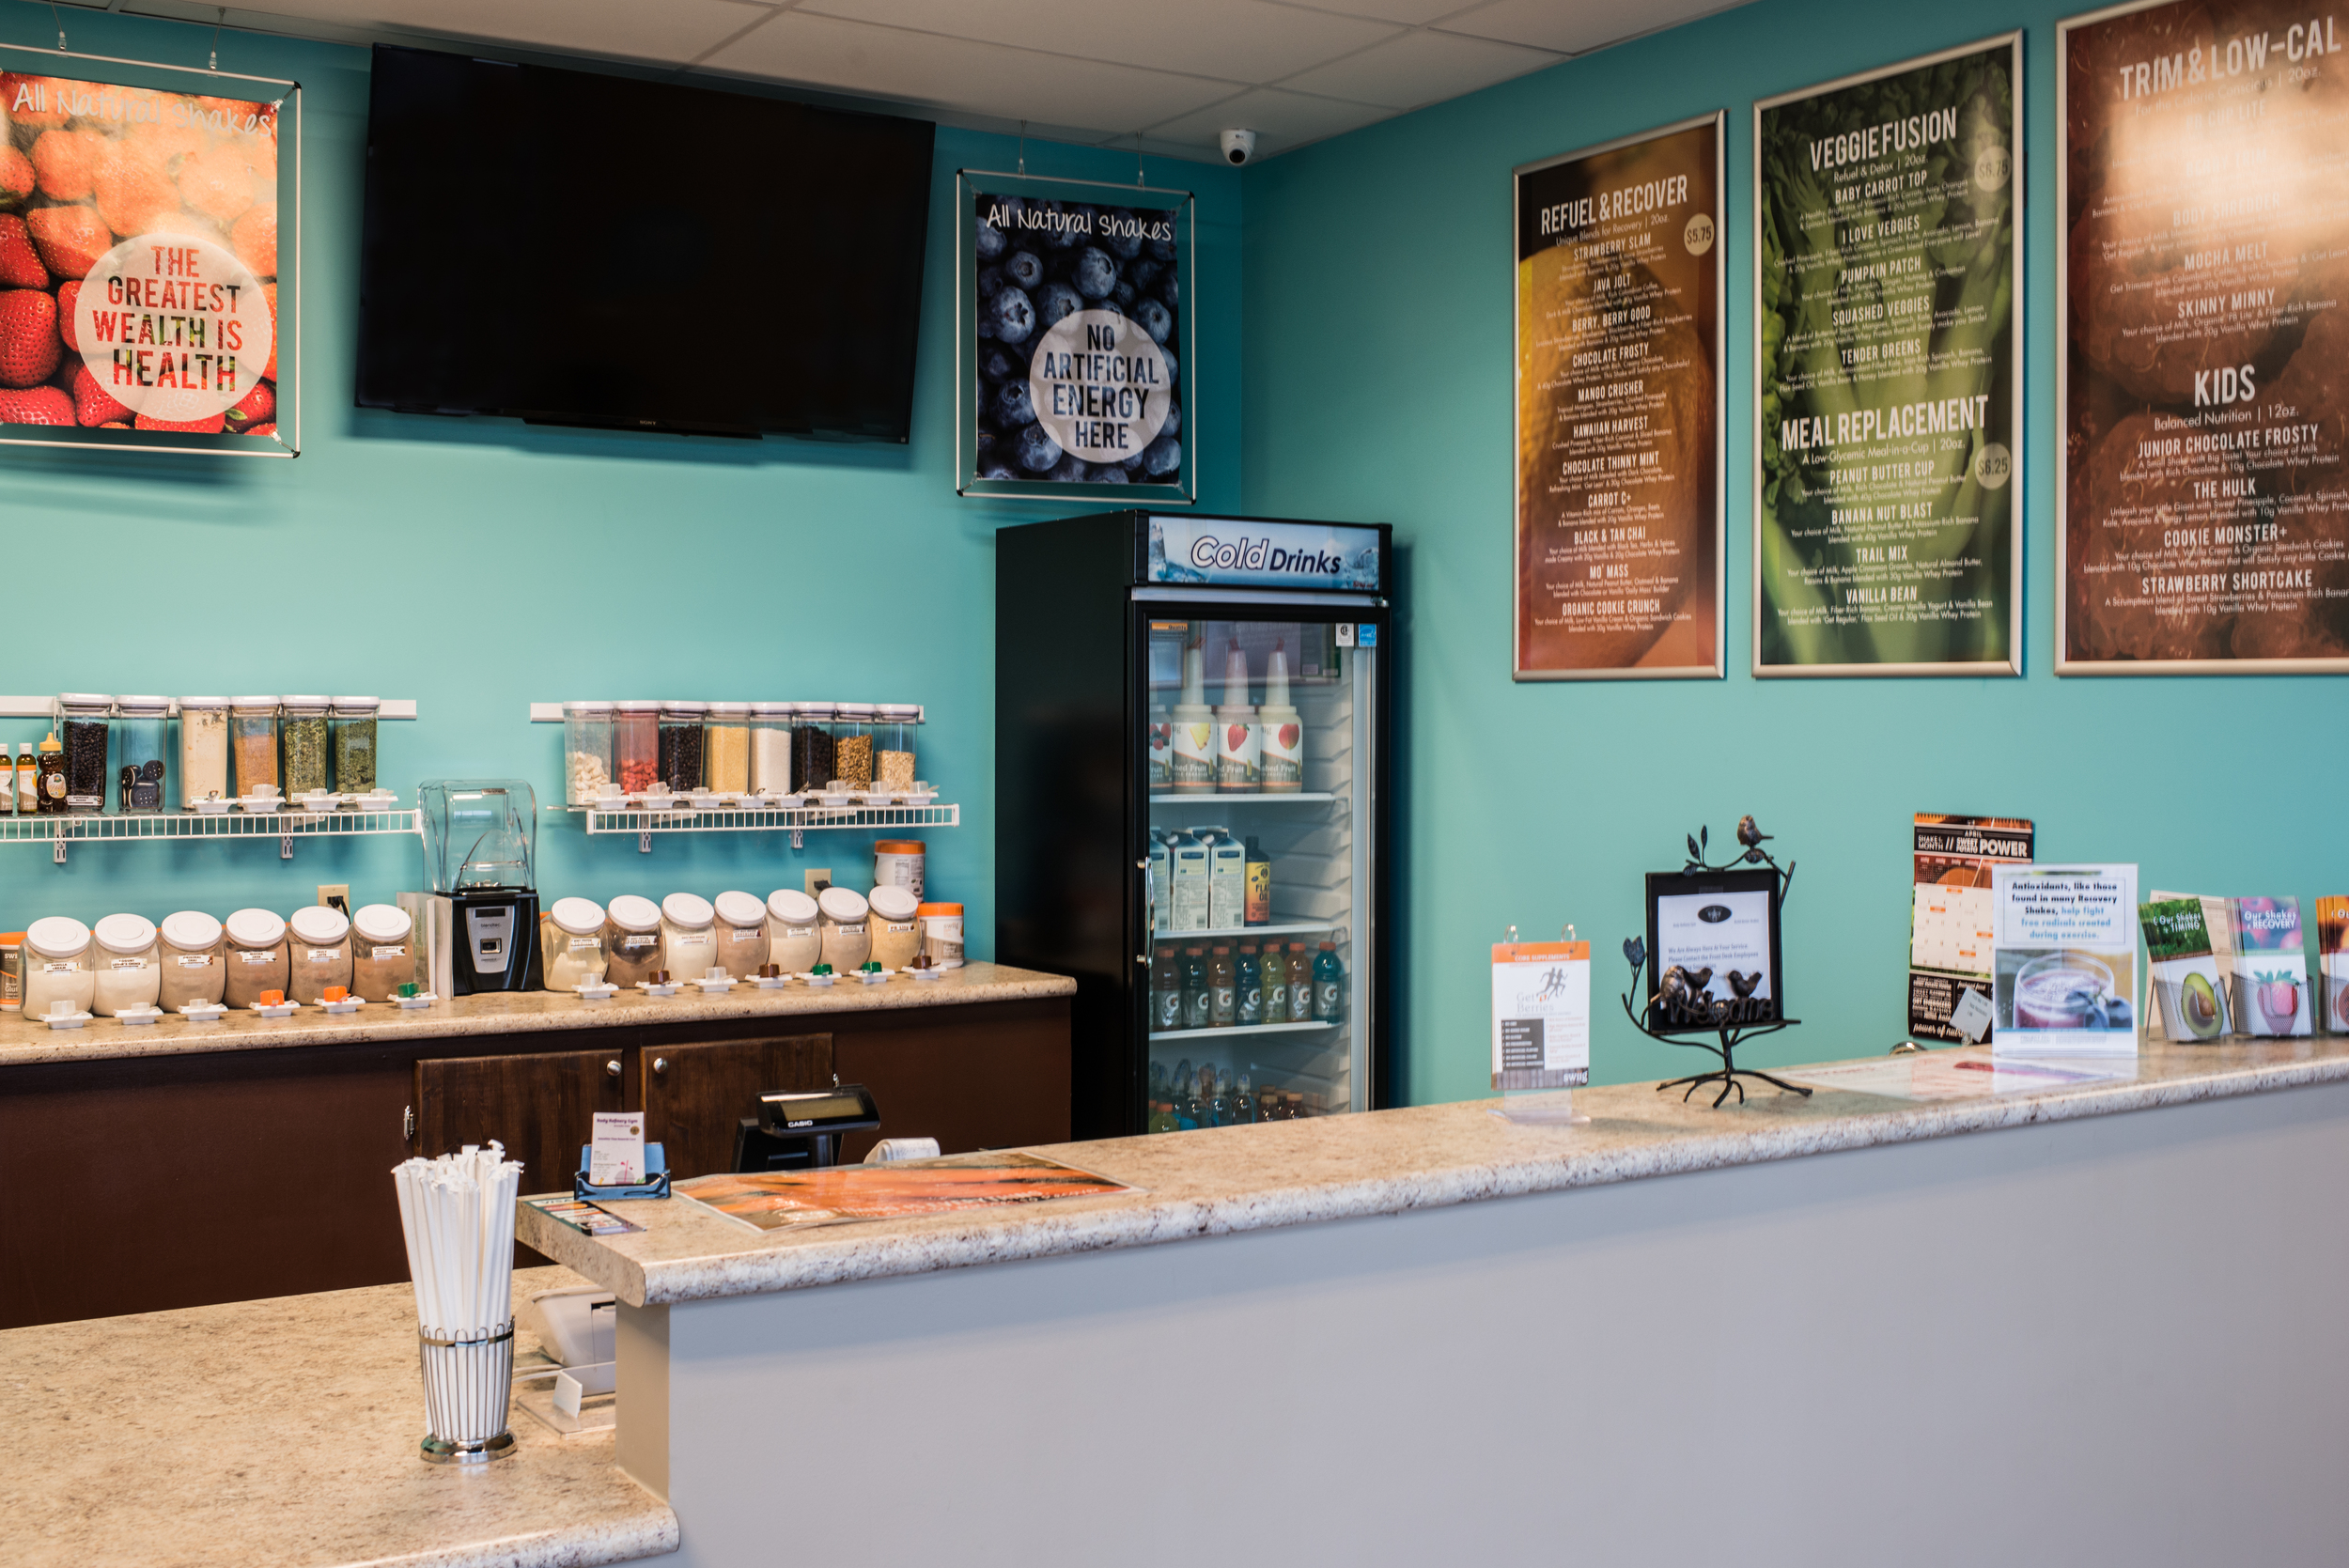 BRG Smoothie Bar